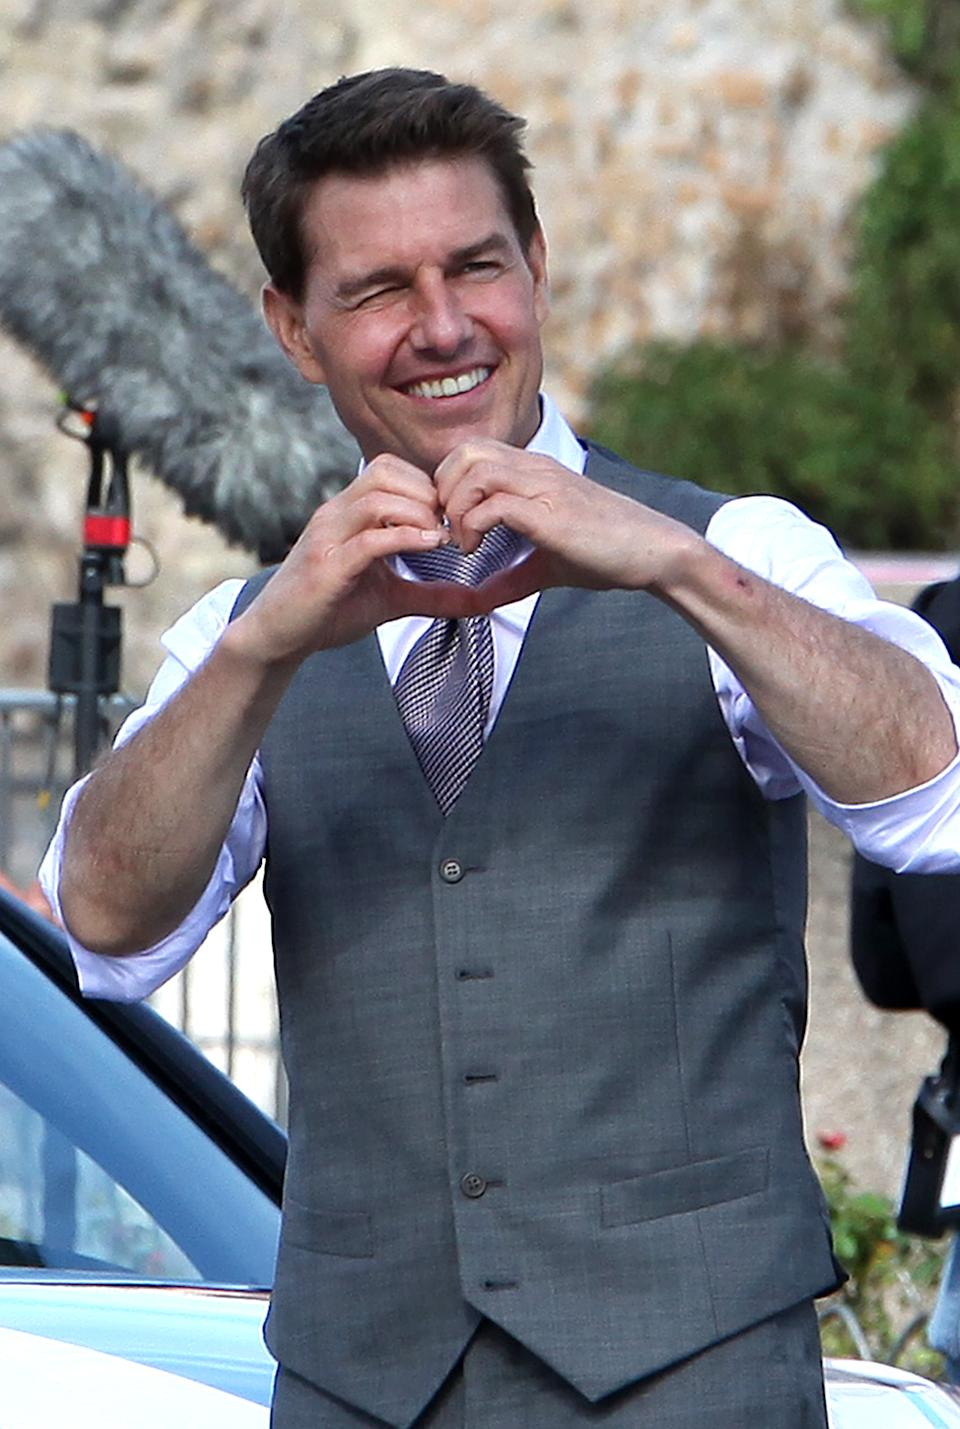 ROME ITALY - OCTOBER 12, 2020 Actor Tom Cruise makes a sign of a heart to fans during a break in the shooting of the film Mission Impossible 7- Lybra. The seventh installment in the Mission Impossible film series is to be released in 2021- PHOTOGRAPH BY Marco Ravagli / Barcroft Studios / Future Publishing (Photo credit should read Marco Ravagli/Barcroft Media via Getty Images)